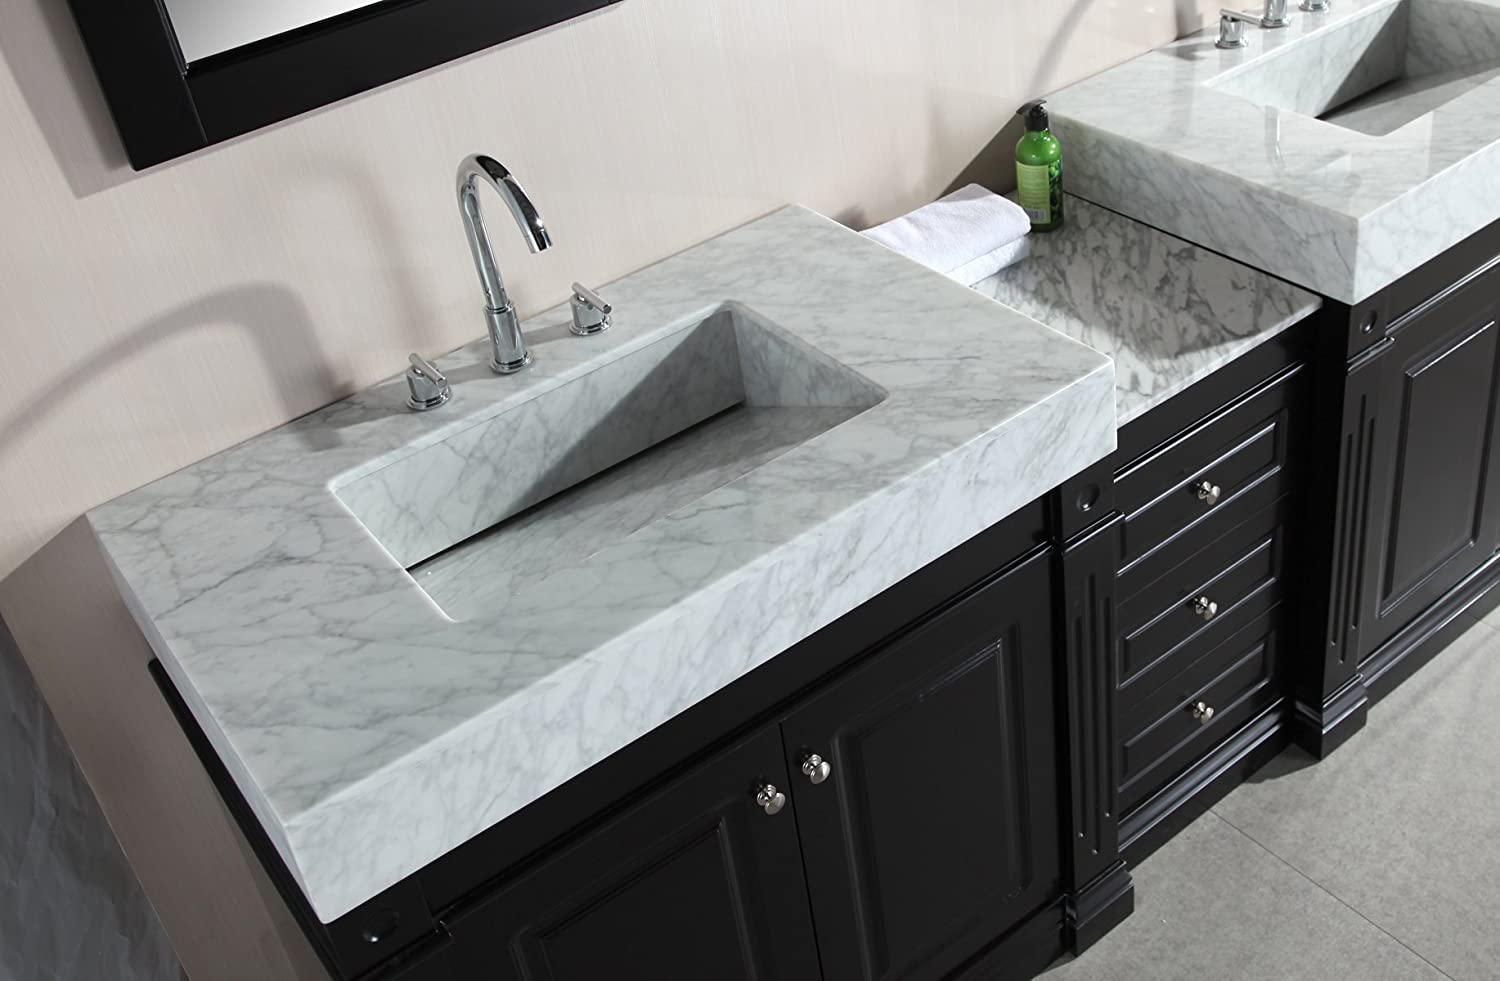 double bathroom vanity sink. design element odyssey double trough style sink vanity set, 90-inch - bathroom vanities amazon.com 3